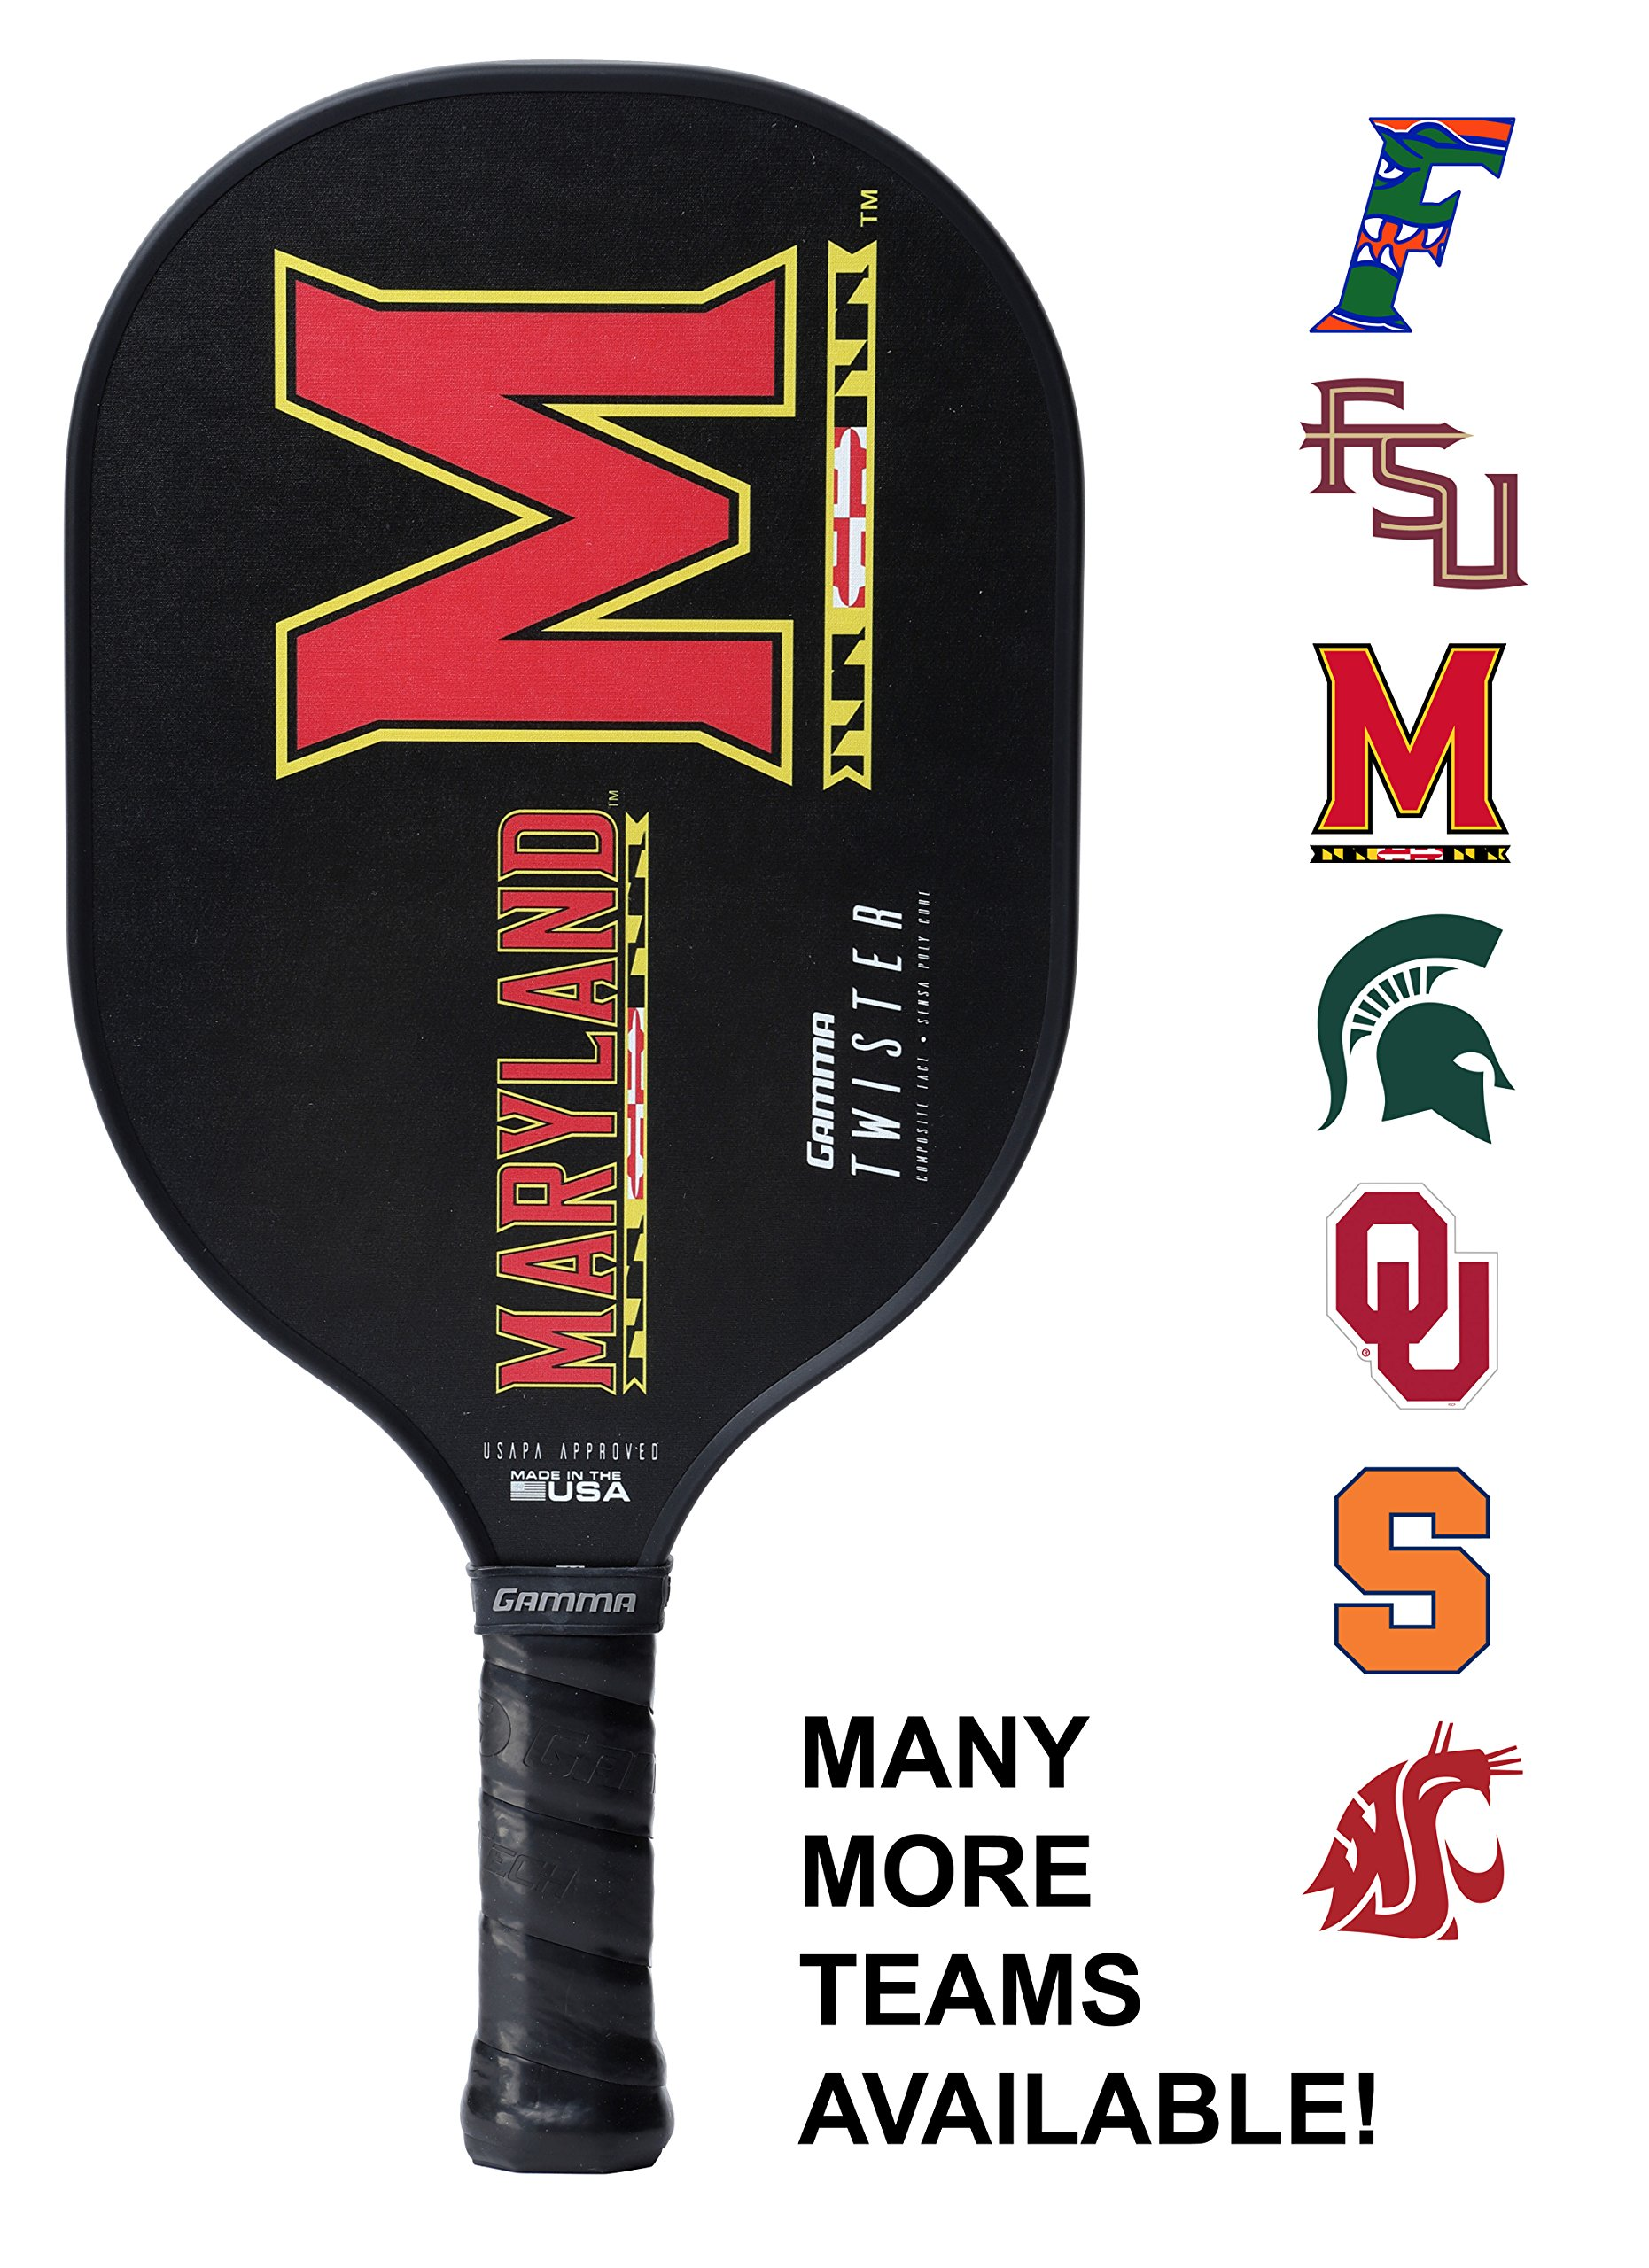 Gamma Collegiate Twister Composite Pickleball Paddle: Pickle Ball Paddles for Indoor & Outdoor Play - USAPA Approved Racquet for Adults & Kids - Maryland Terrapins